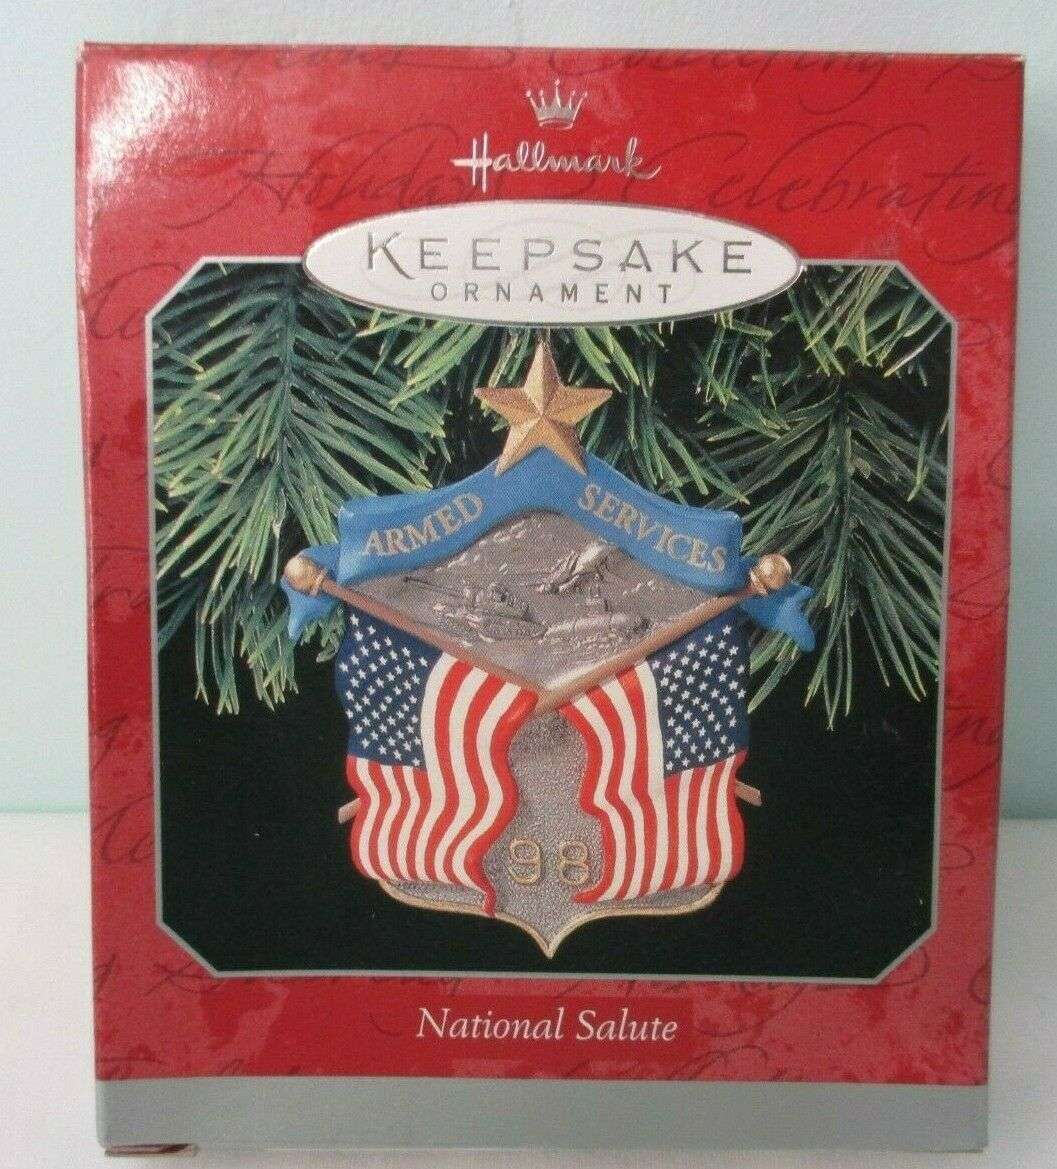 National Armed Services Salute 1998 Hallmark Keepsake Ornament New in Box